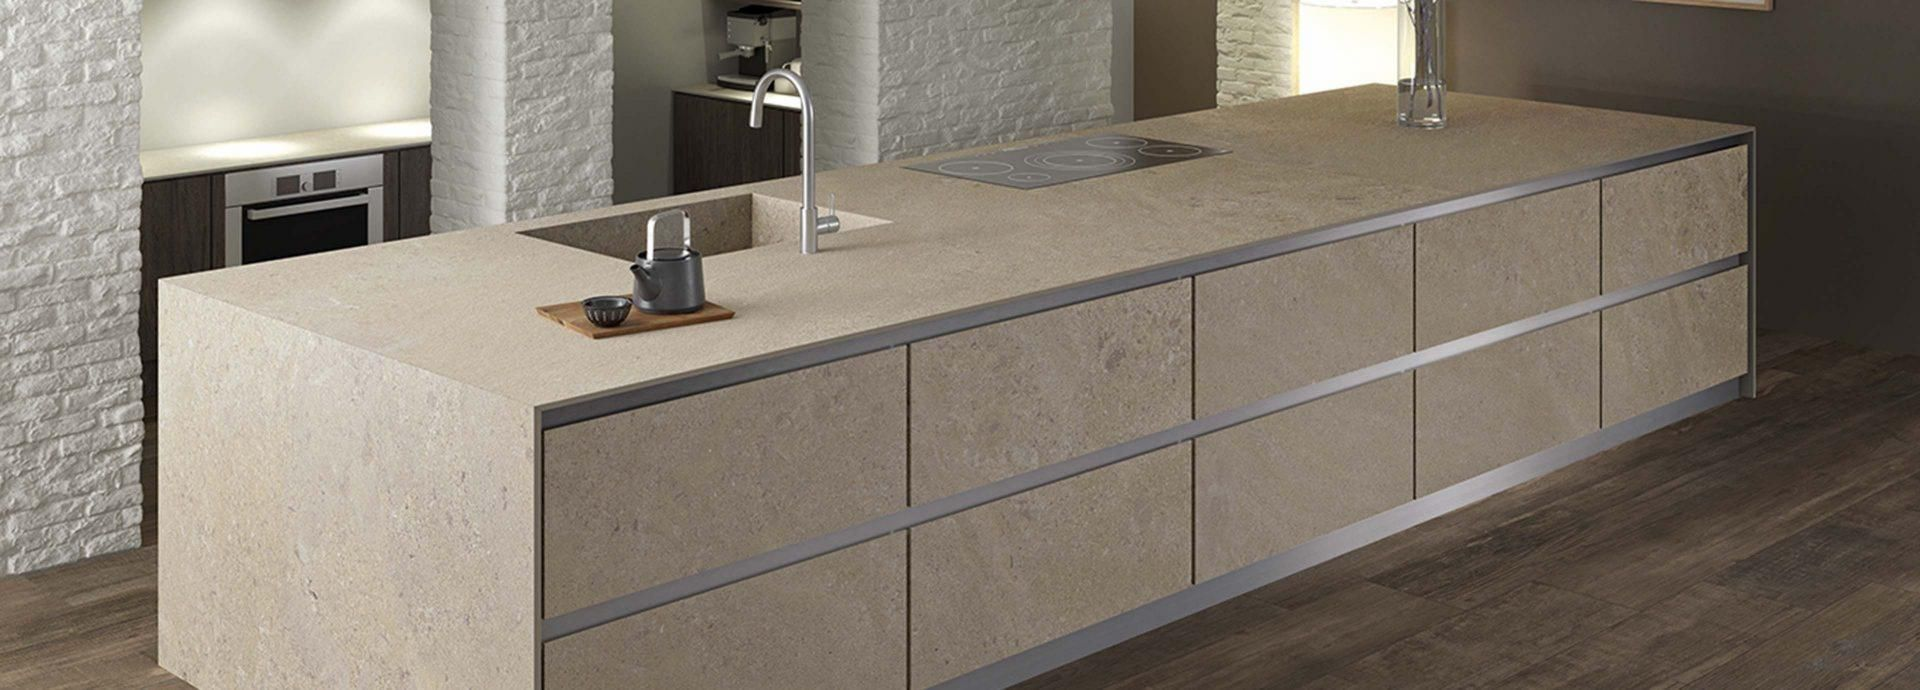 Oatmeal from the Ceralsio ceramic surfaces range